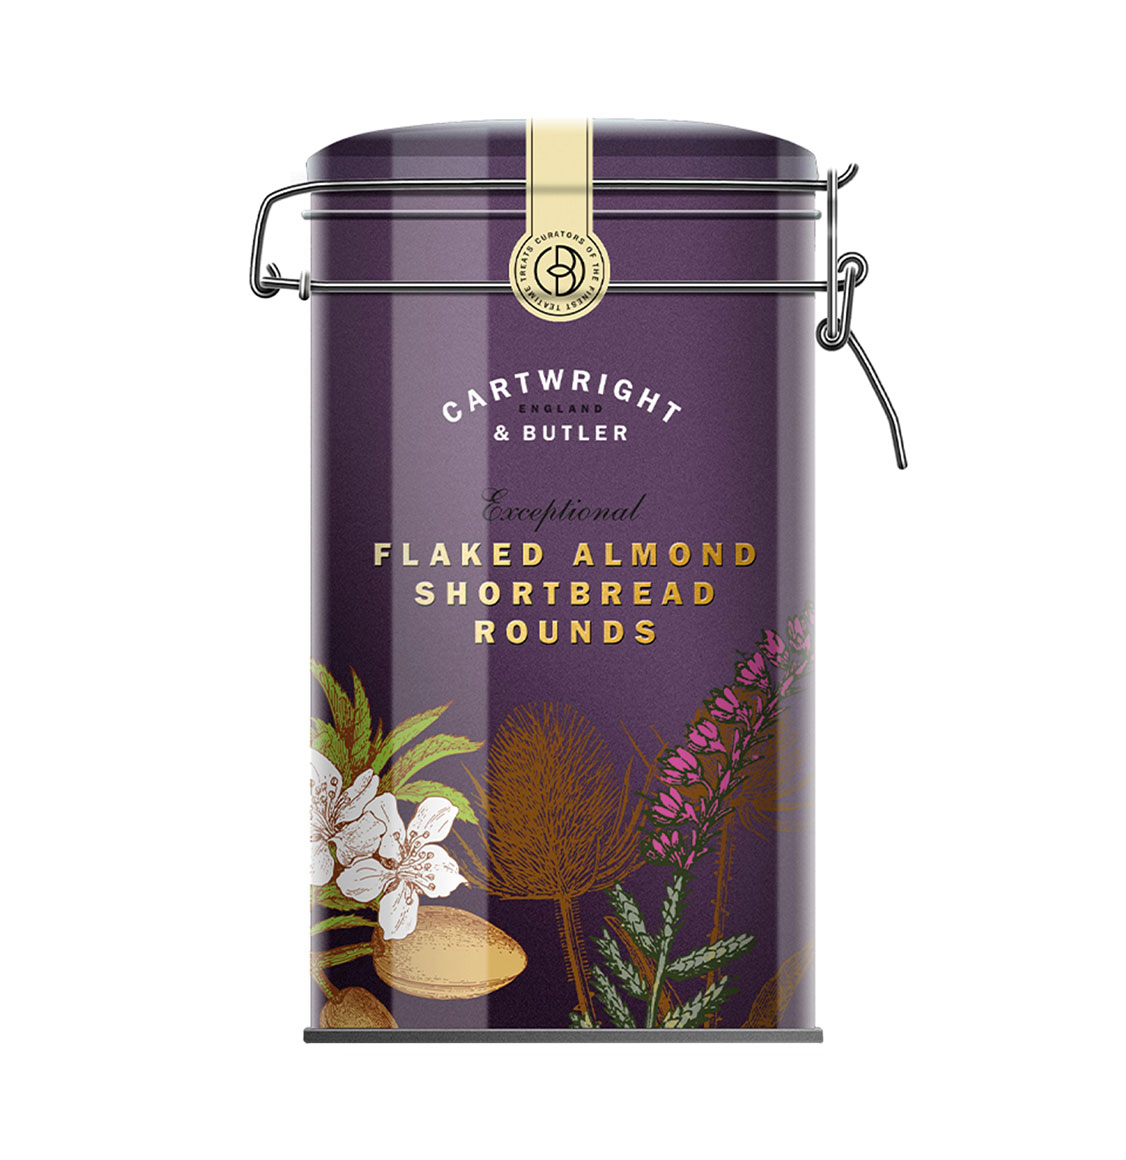 Cartwright and Butler Flaked Almond Shortbread Rounds 200g